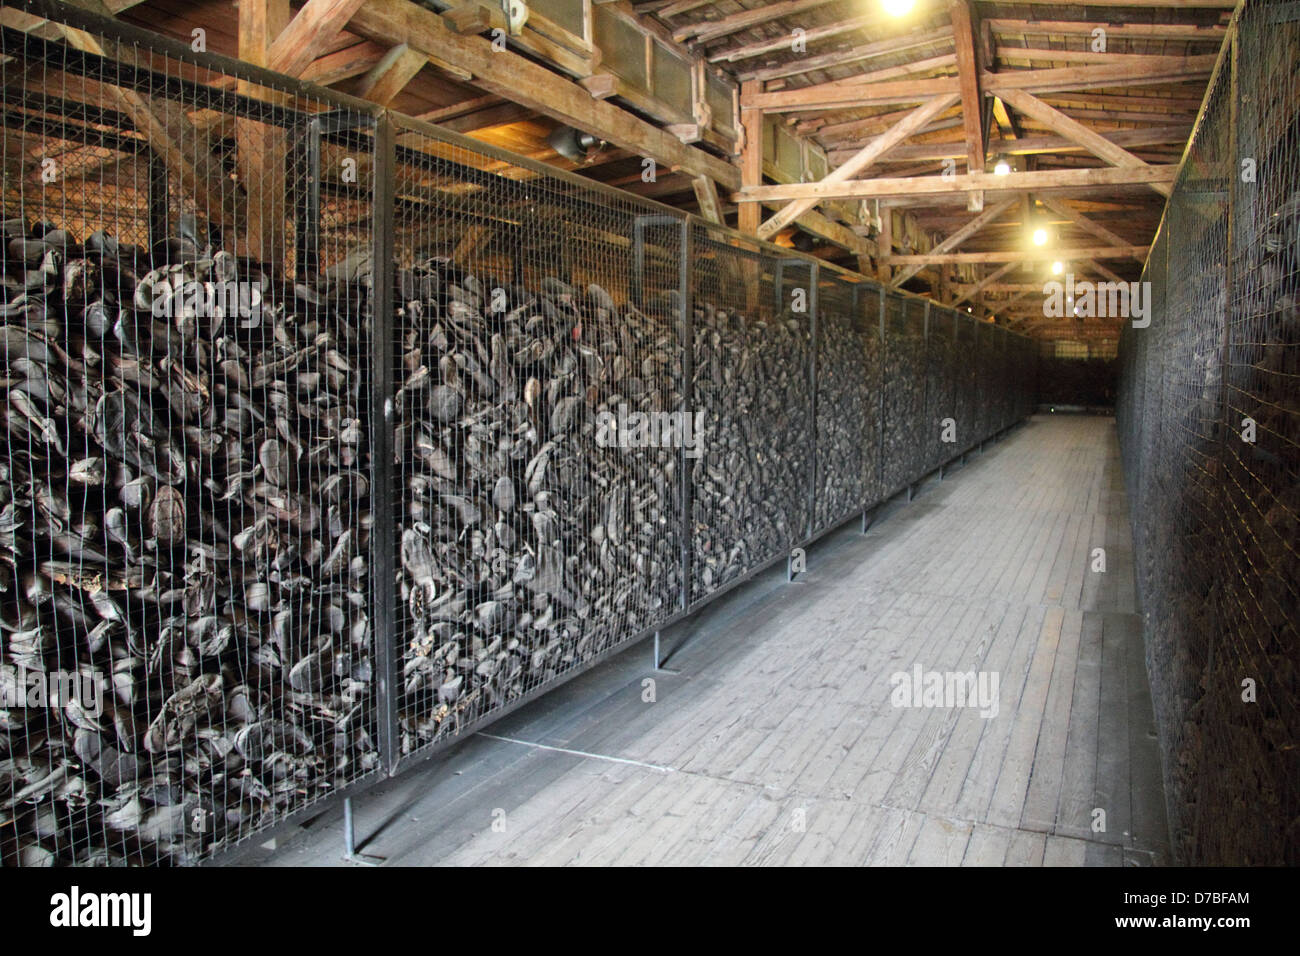 Thousands of shoes (Estimated 50,000 pairs) of the victims displayed at Majdanek death camp - Stock Image